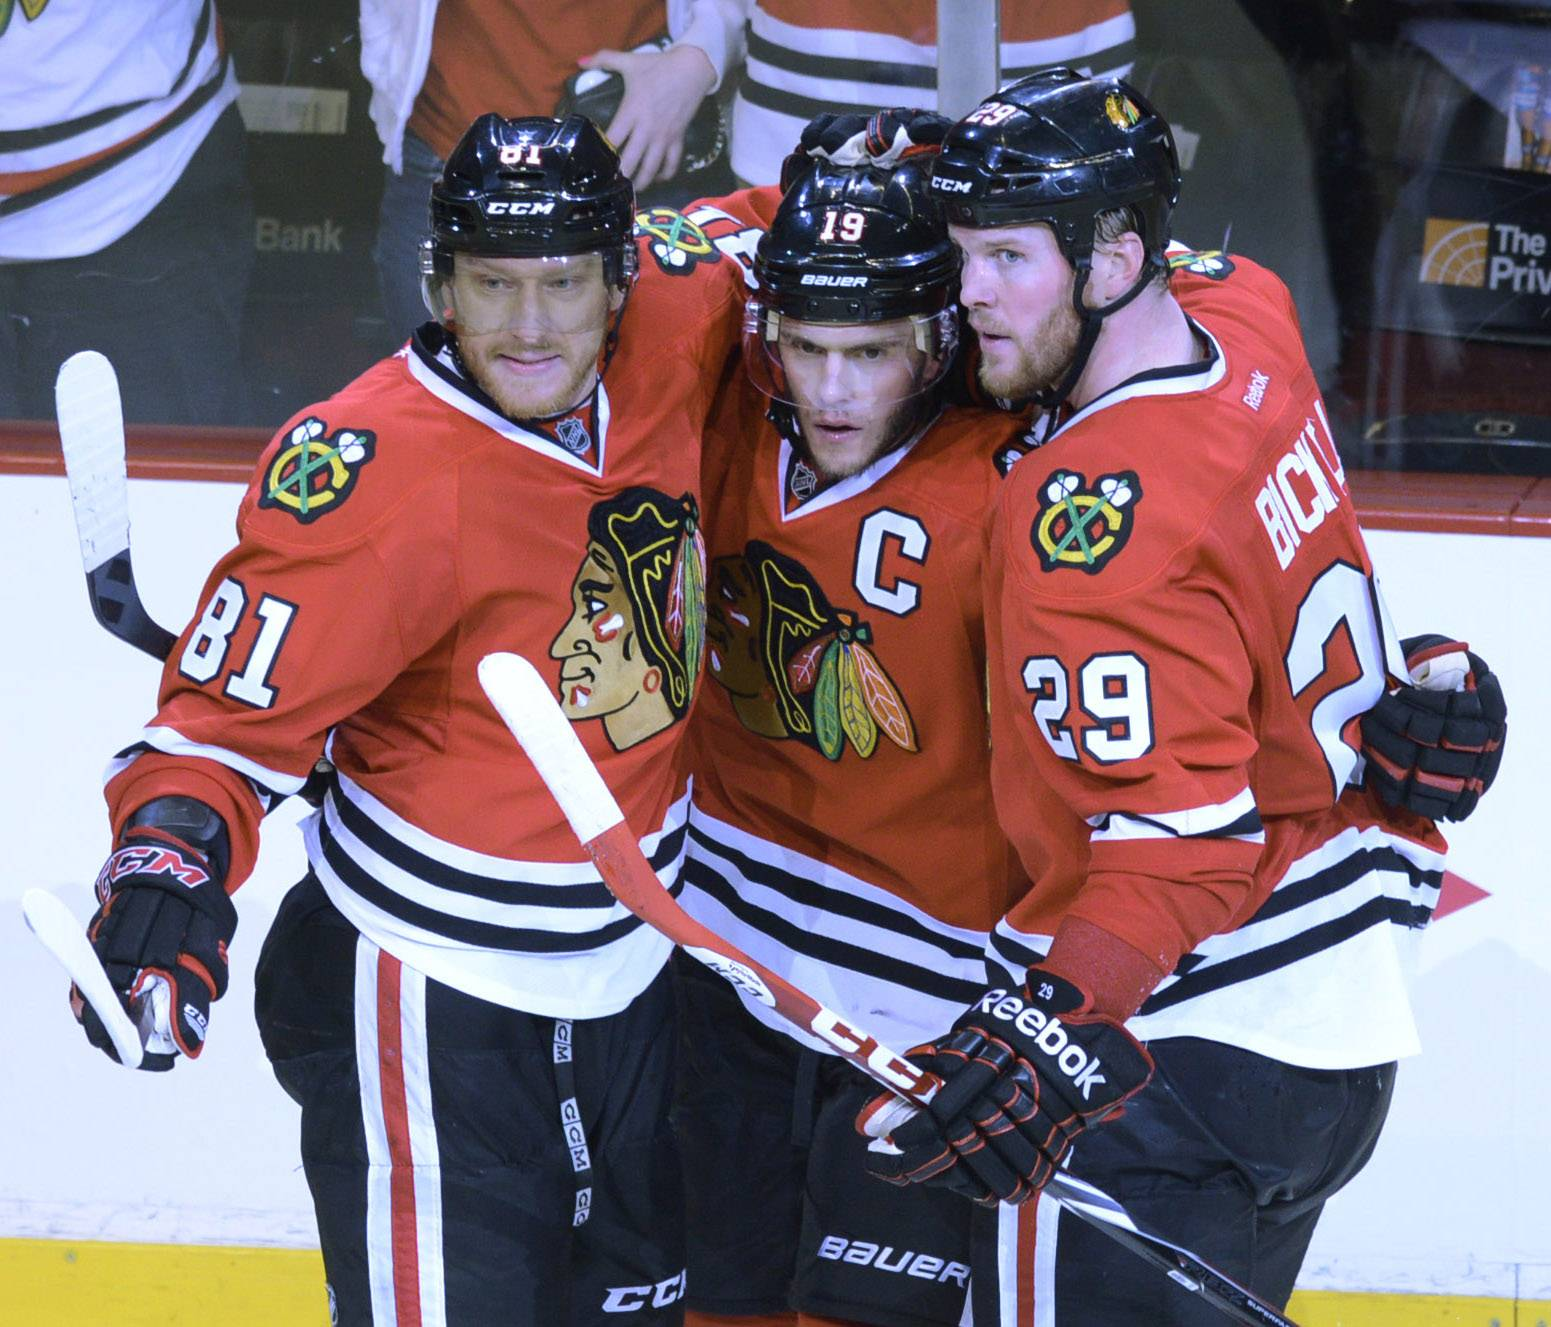 Images: Blackhawks vs. Kings, Game One